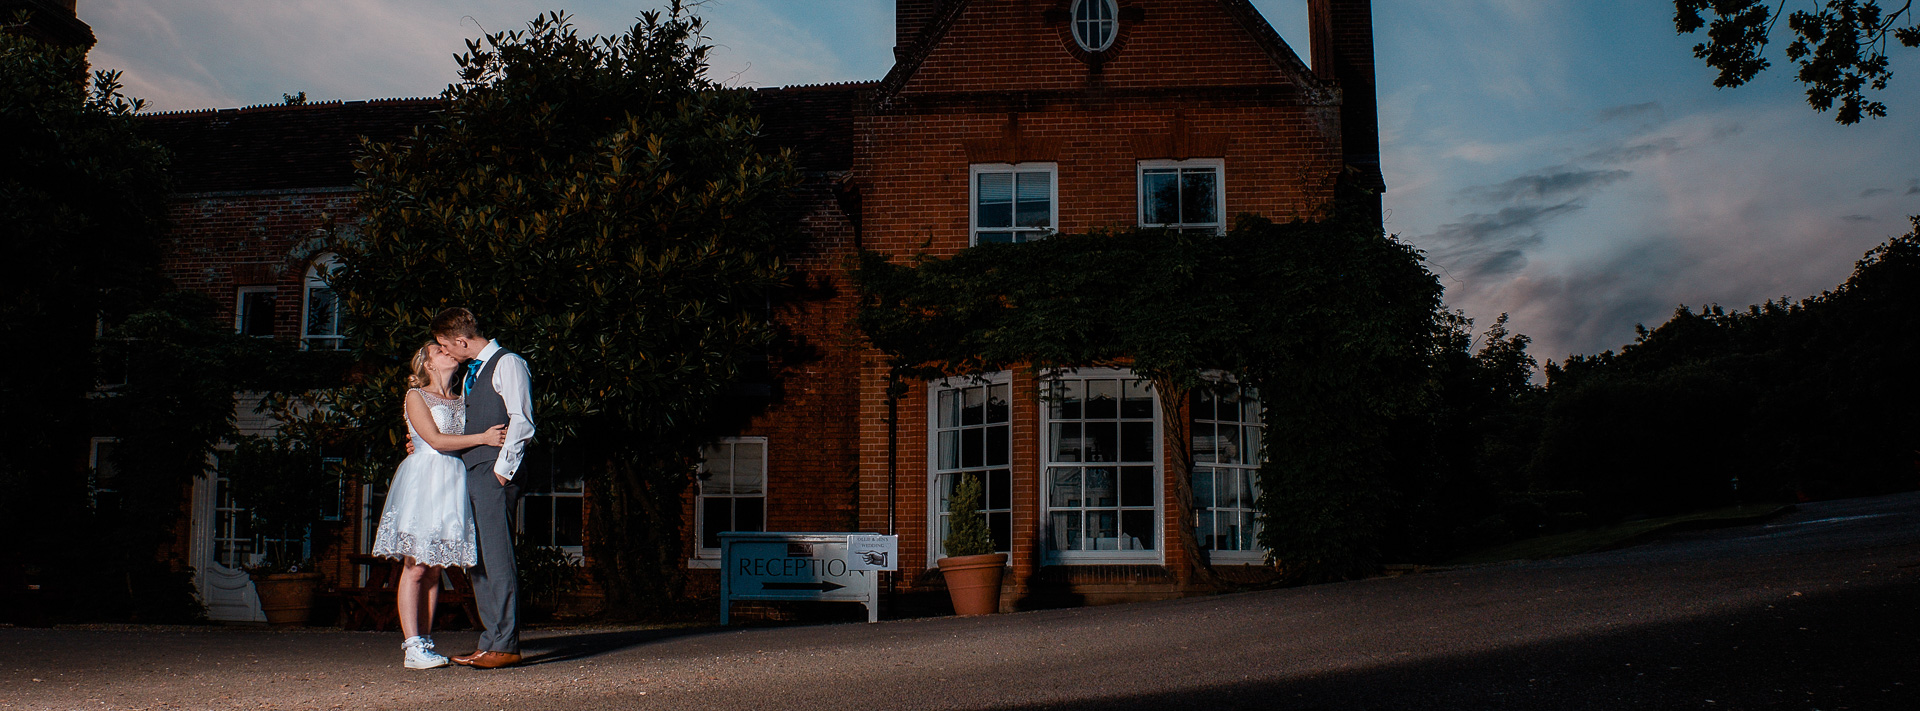 Jen and Ollie's Wedding at Belstead Brook Hotel